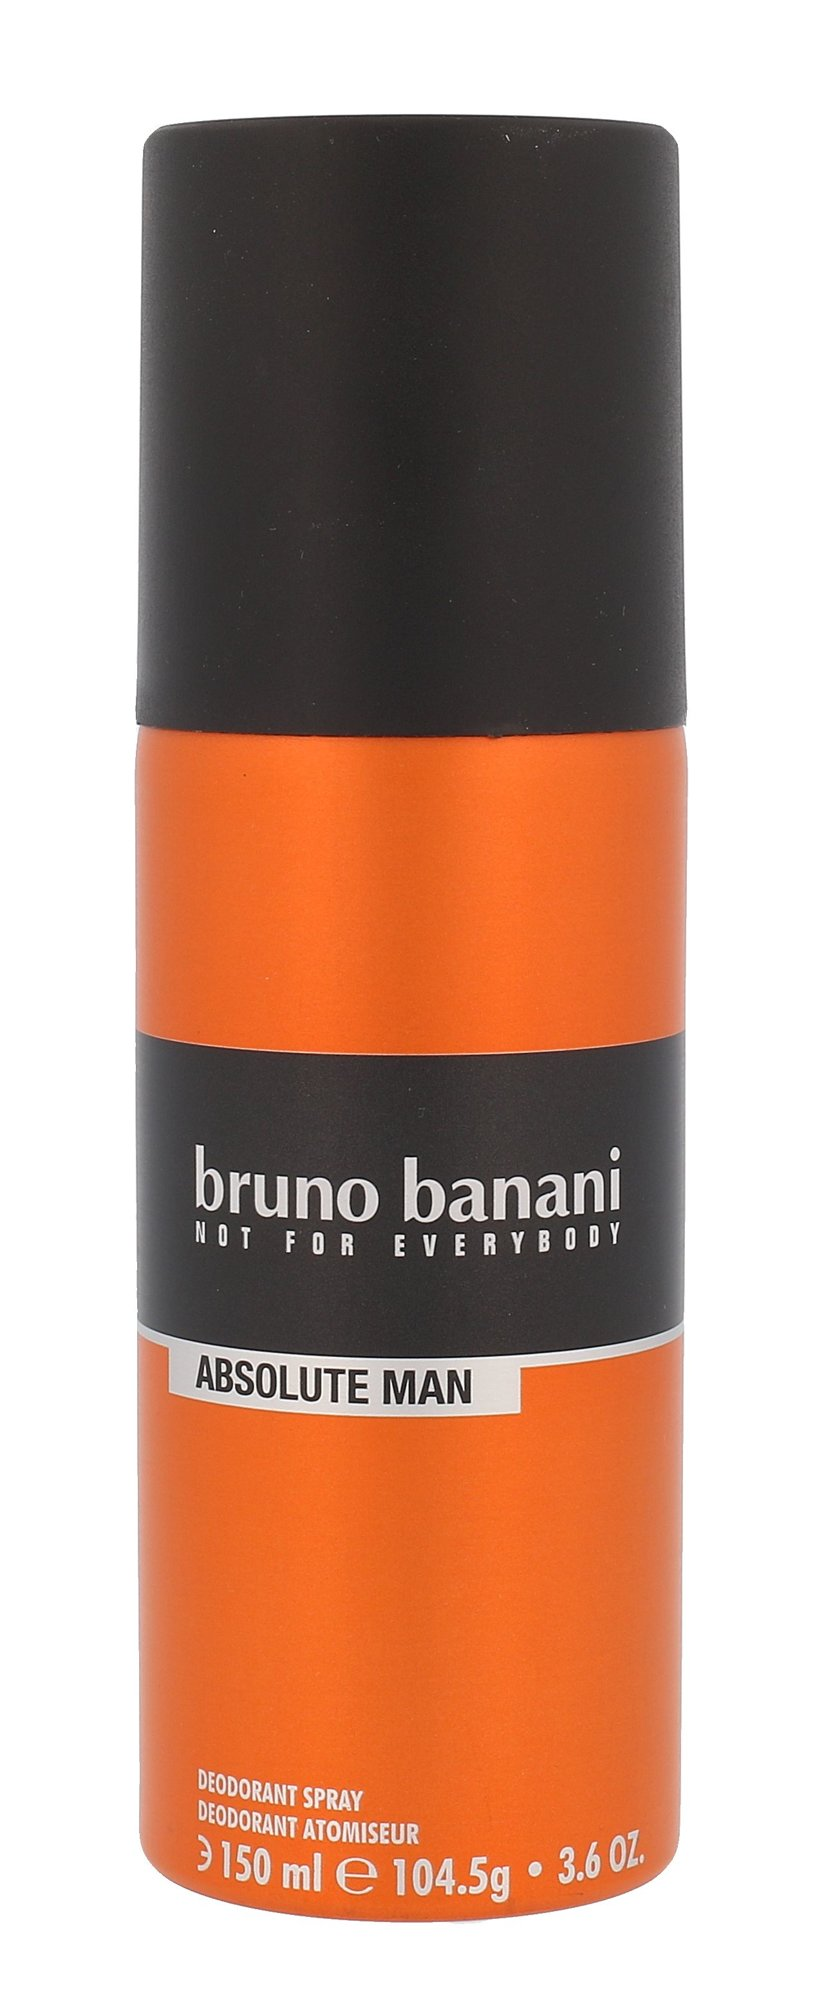 Bruno Banani Absolute Man  Deodorant, M, 150 ml